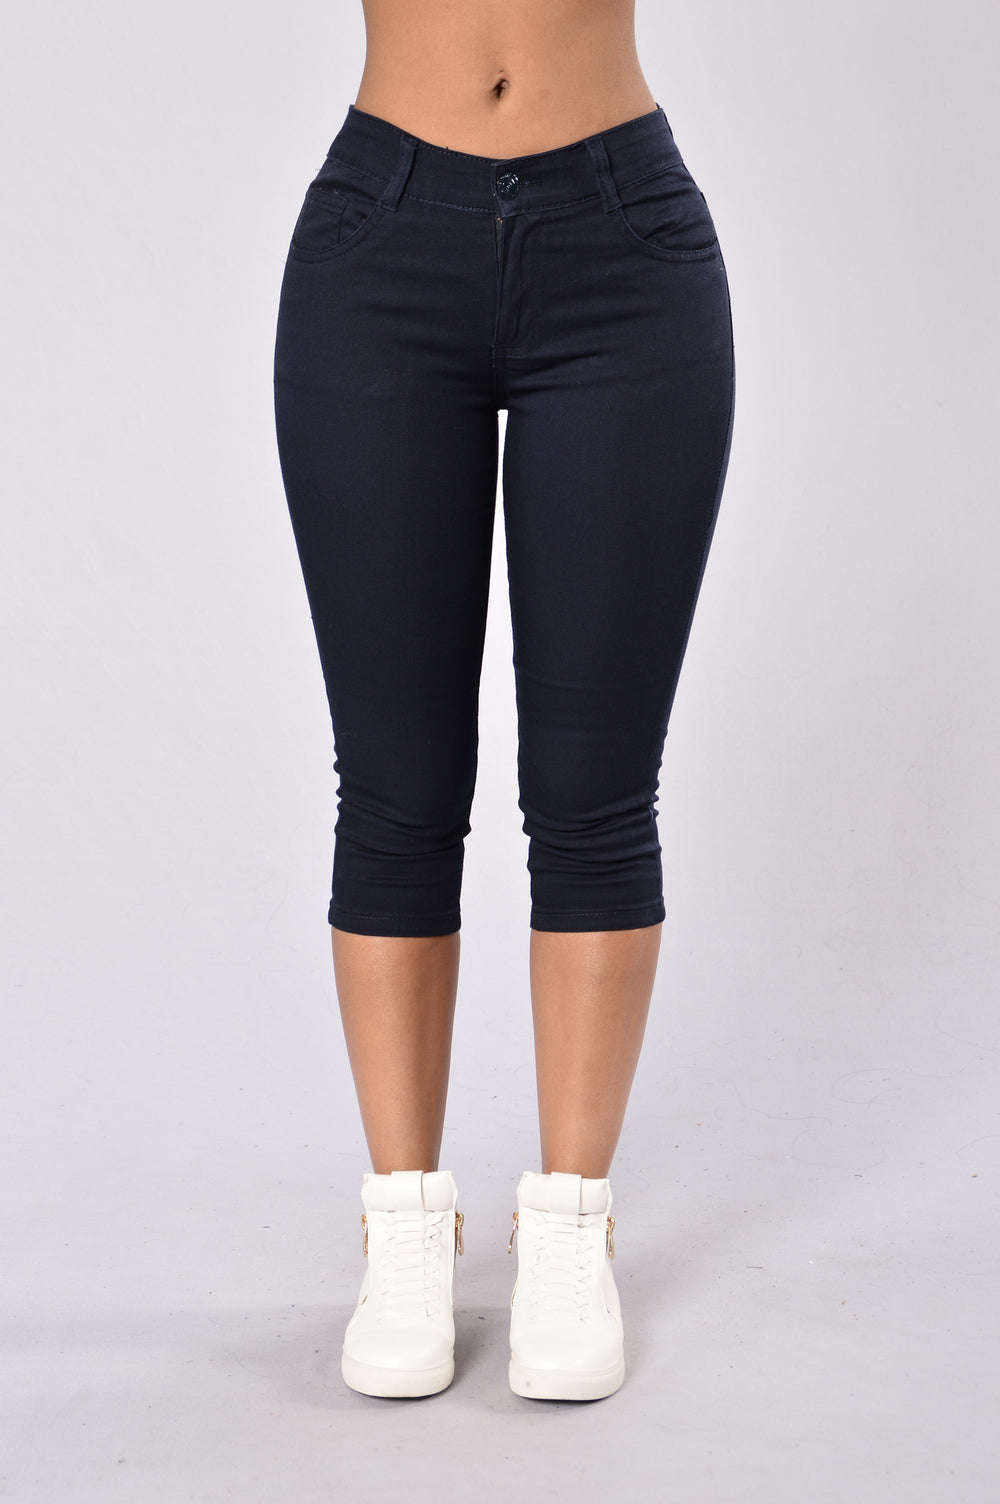 Capri Uniform Pants - Navy